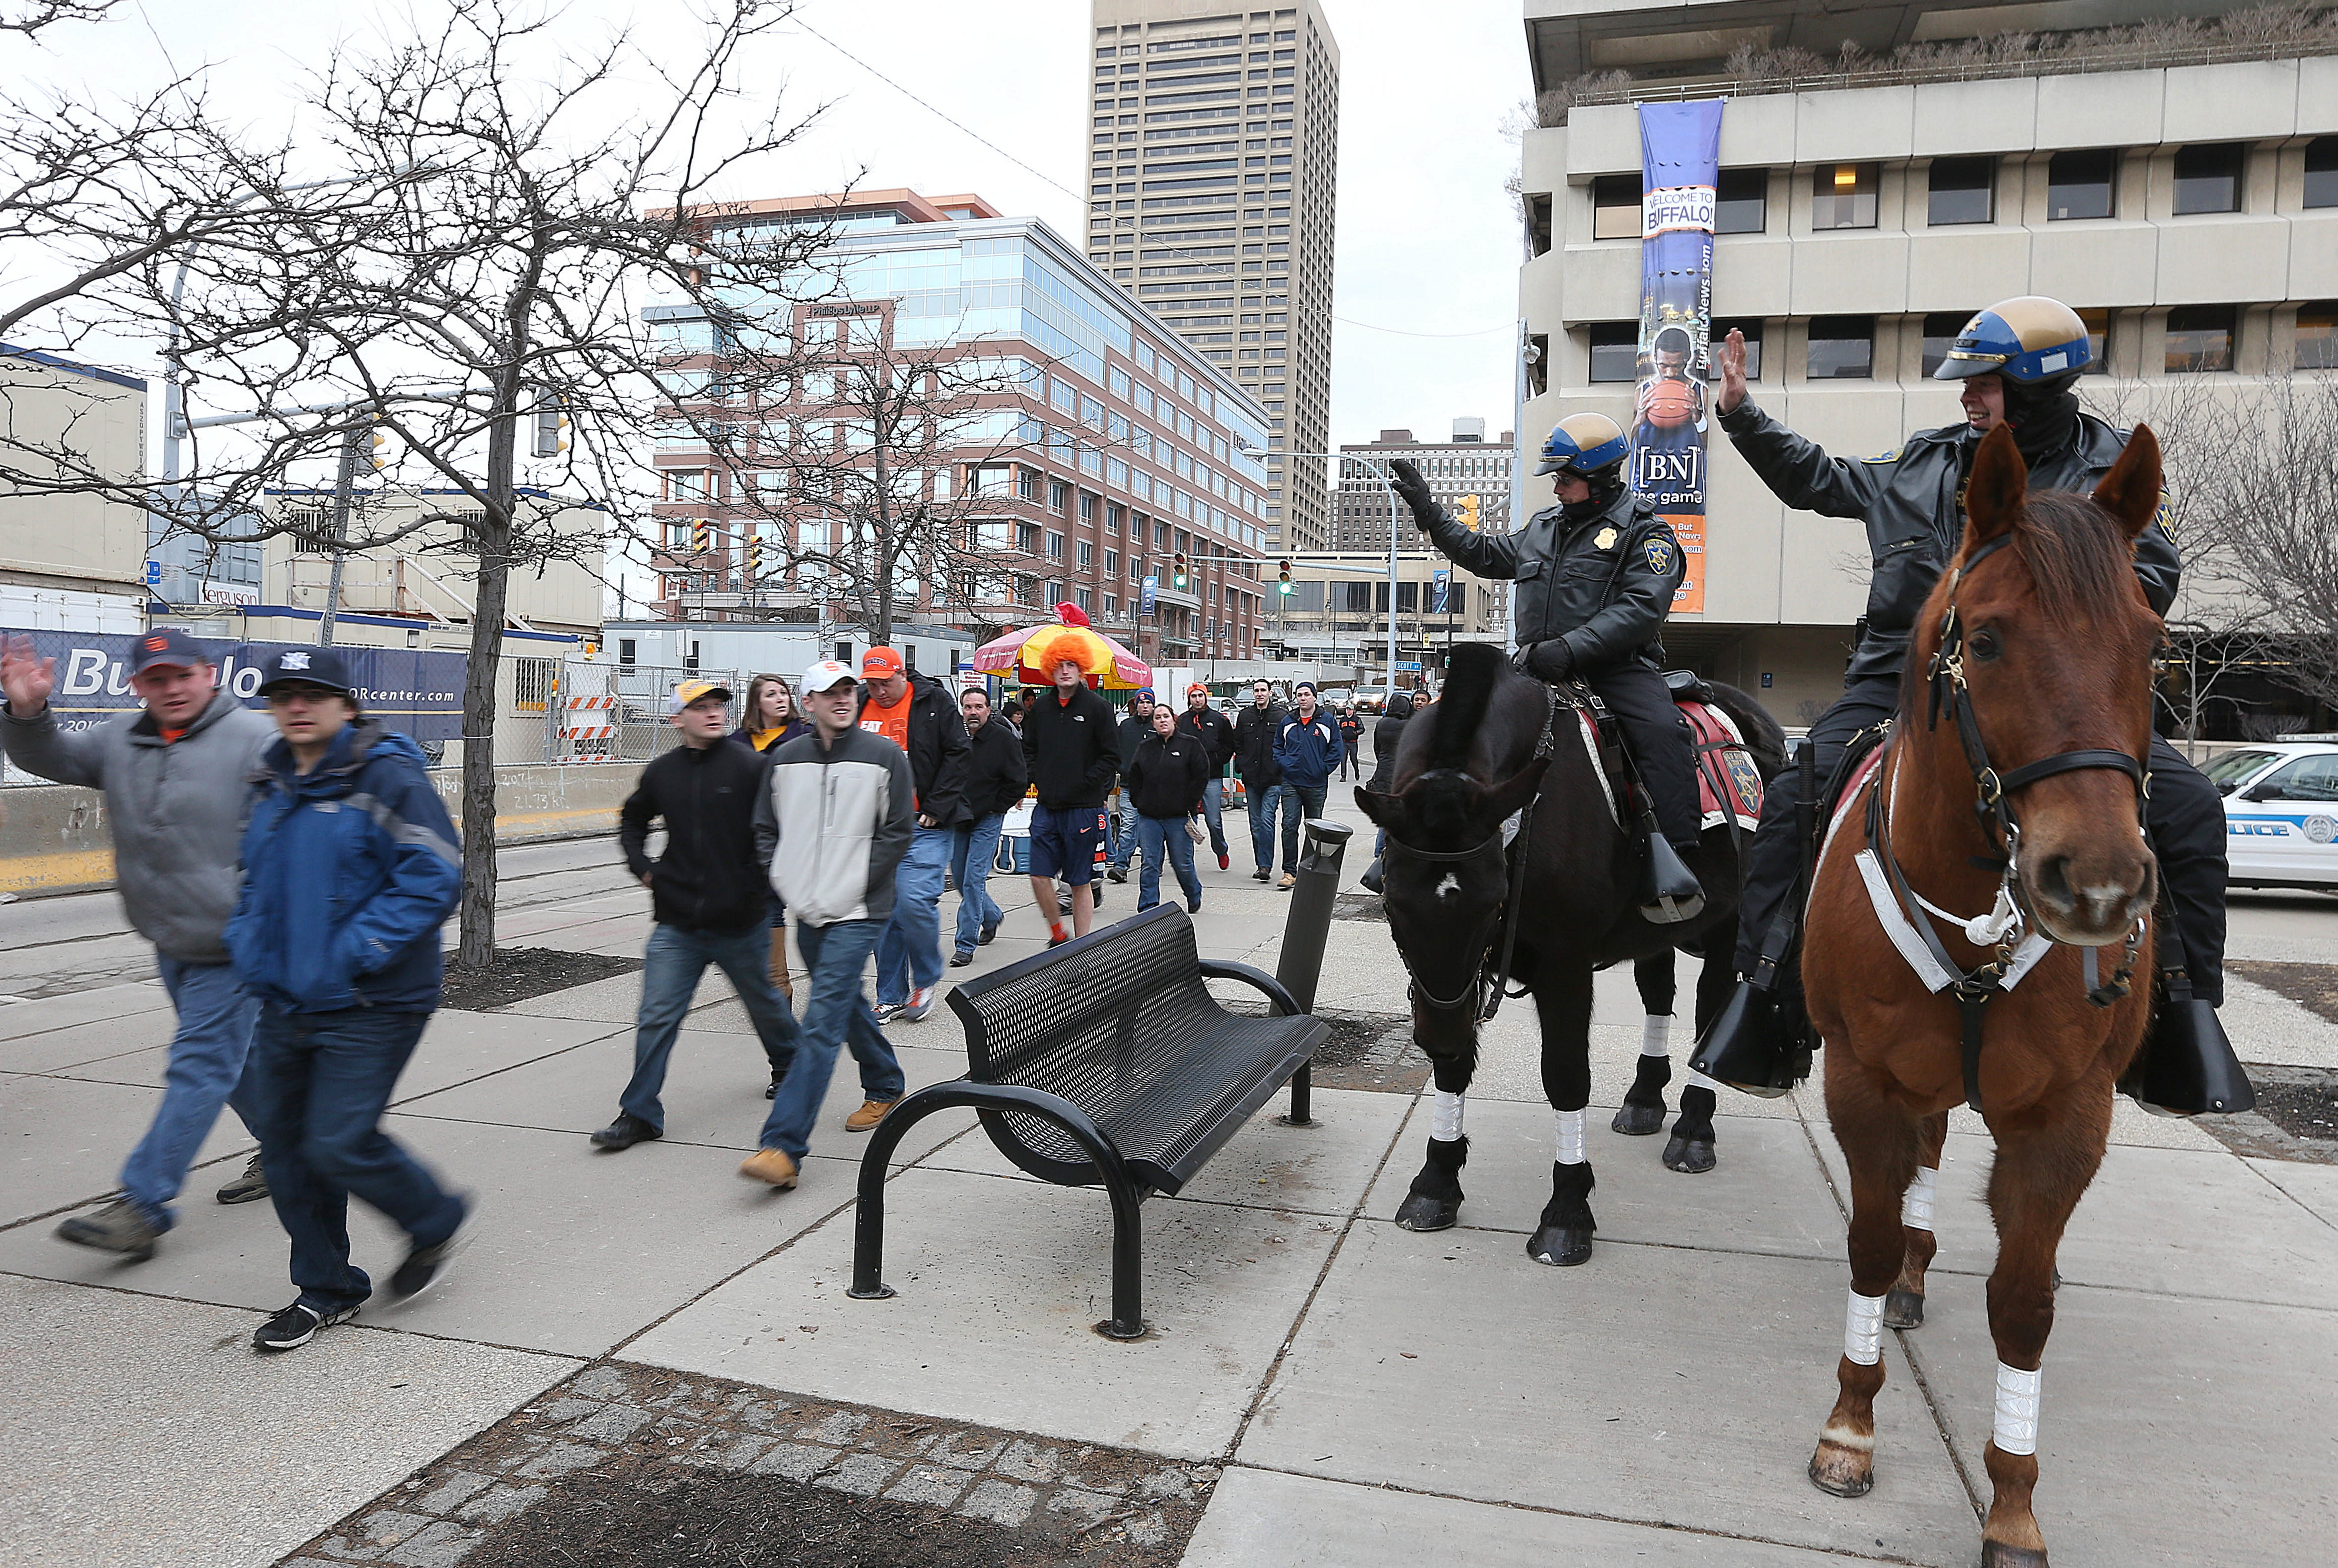 Mounted patrolmen from the Erie County Sheriff's Office greeted NCAA fans on their way to First Niagara Center for the men's basketball tournament Saturday.